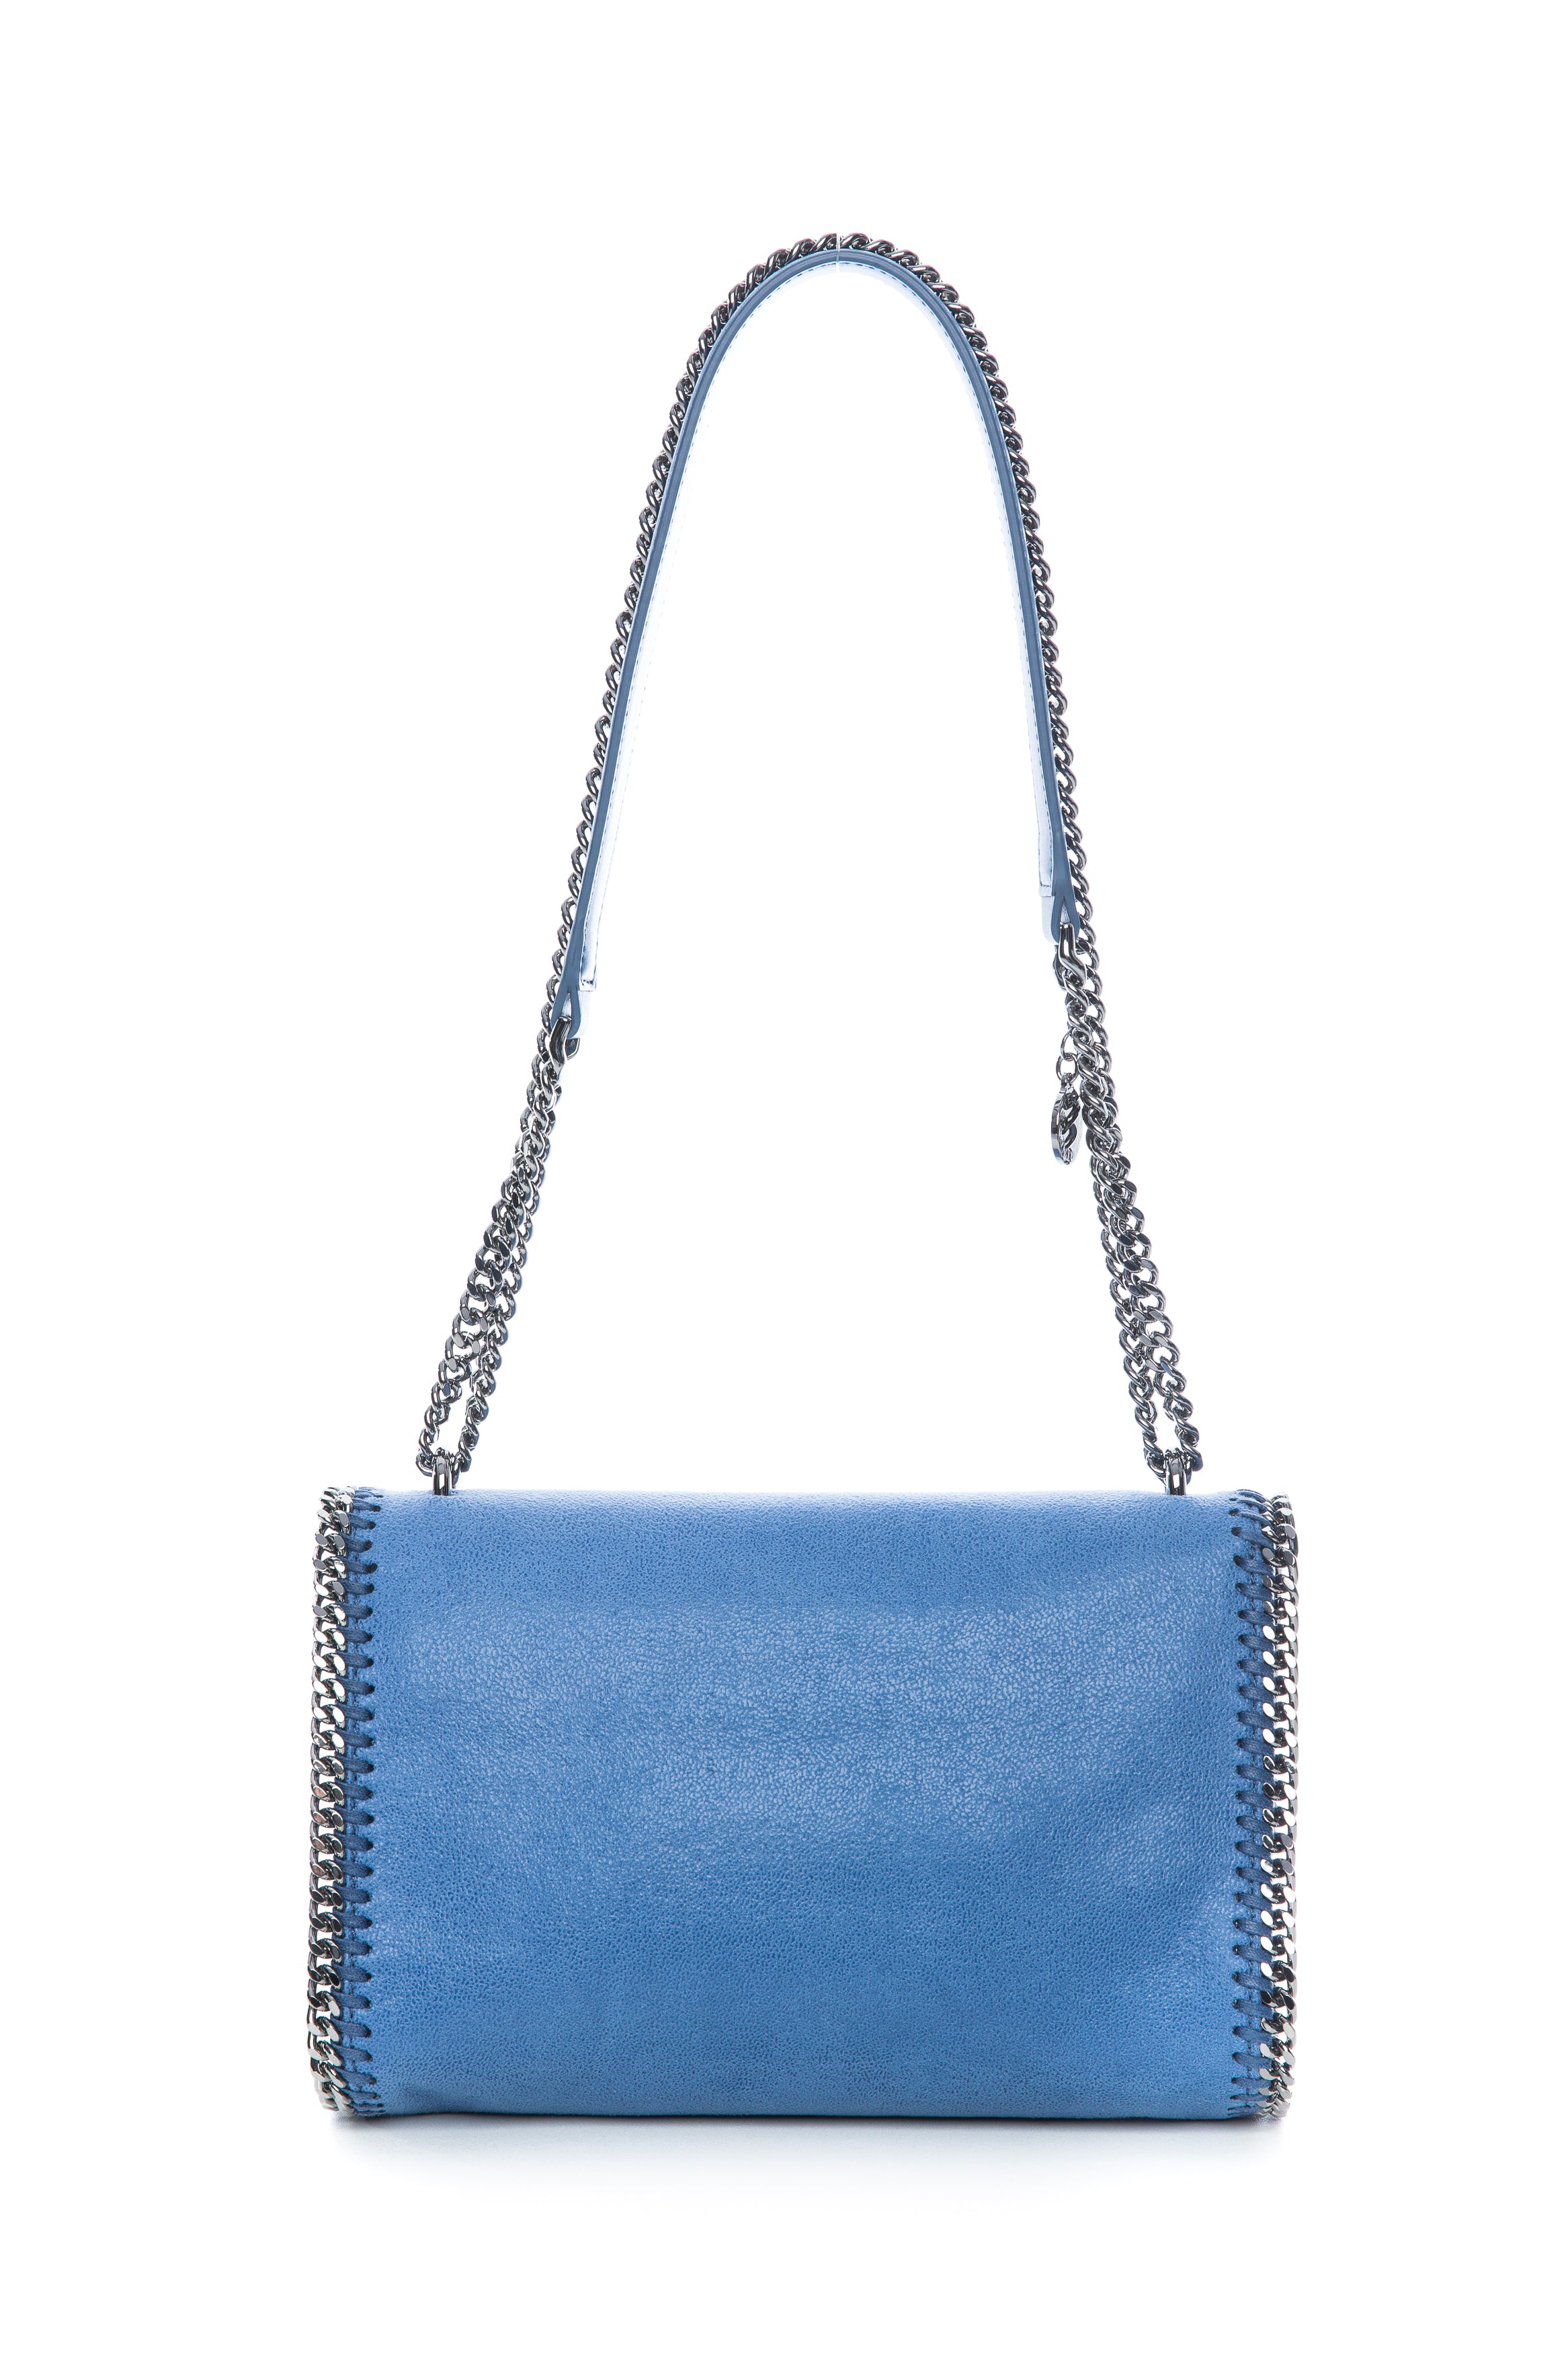 FALABELLA SHOULDER BAG DENIM BLUE